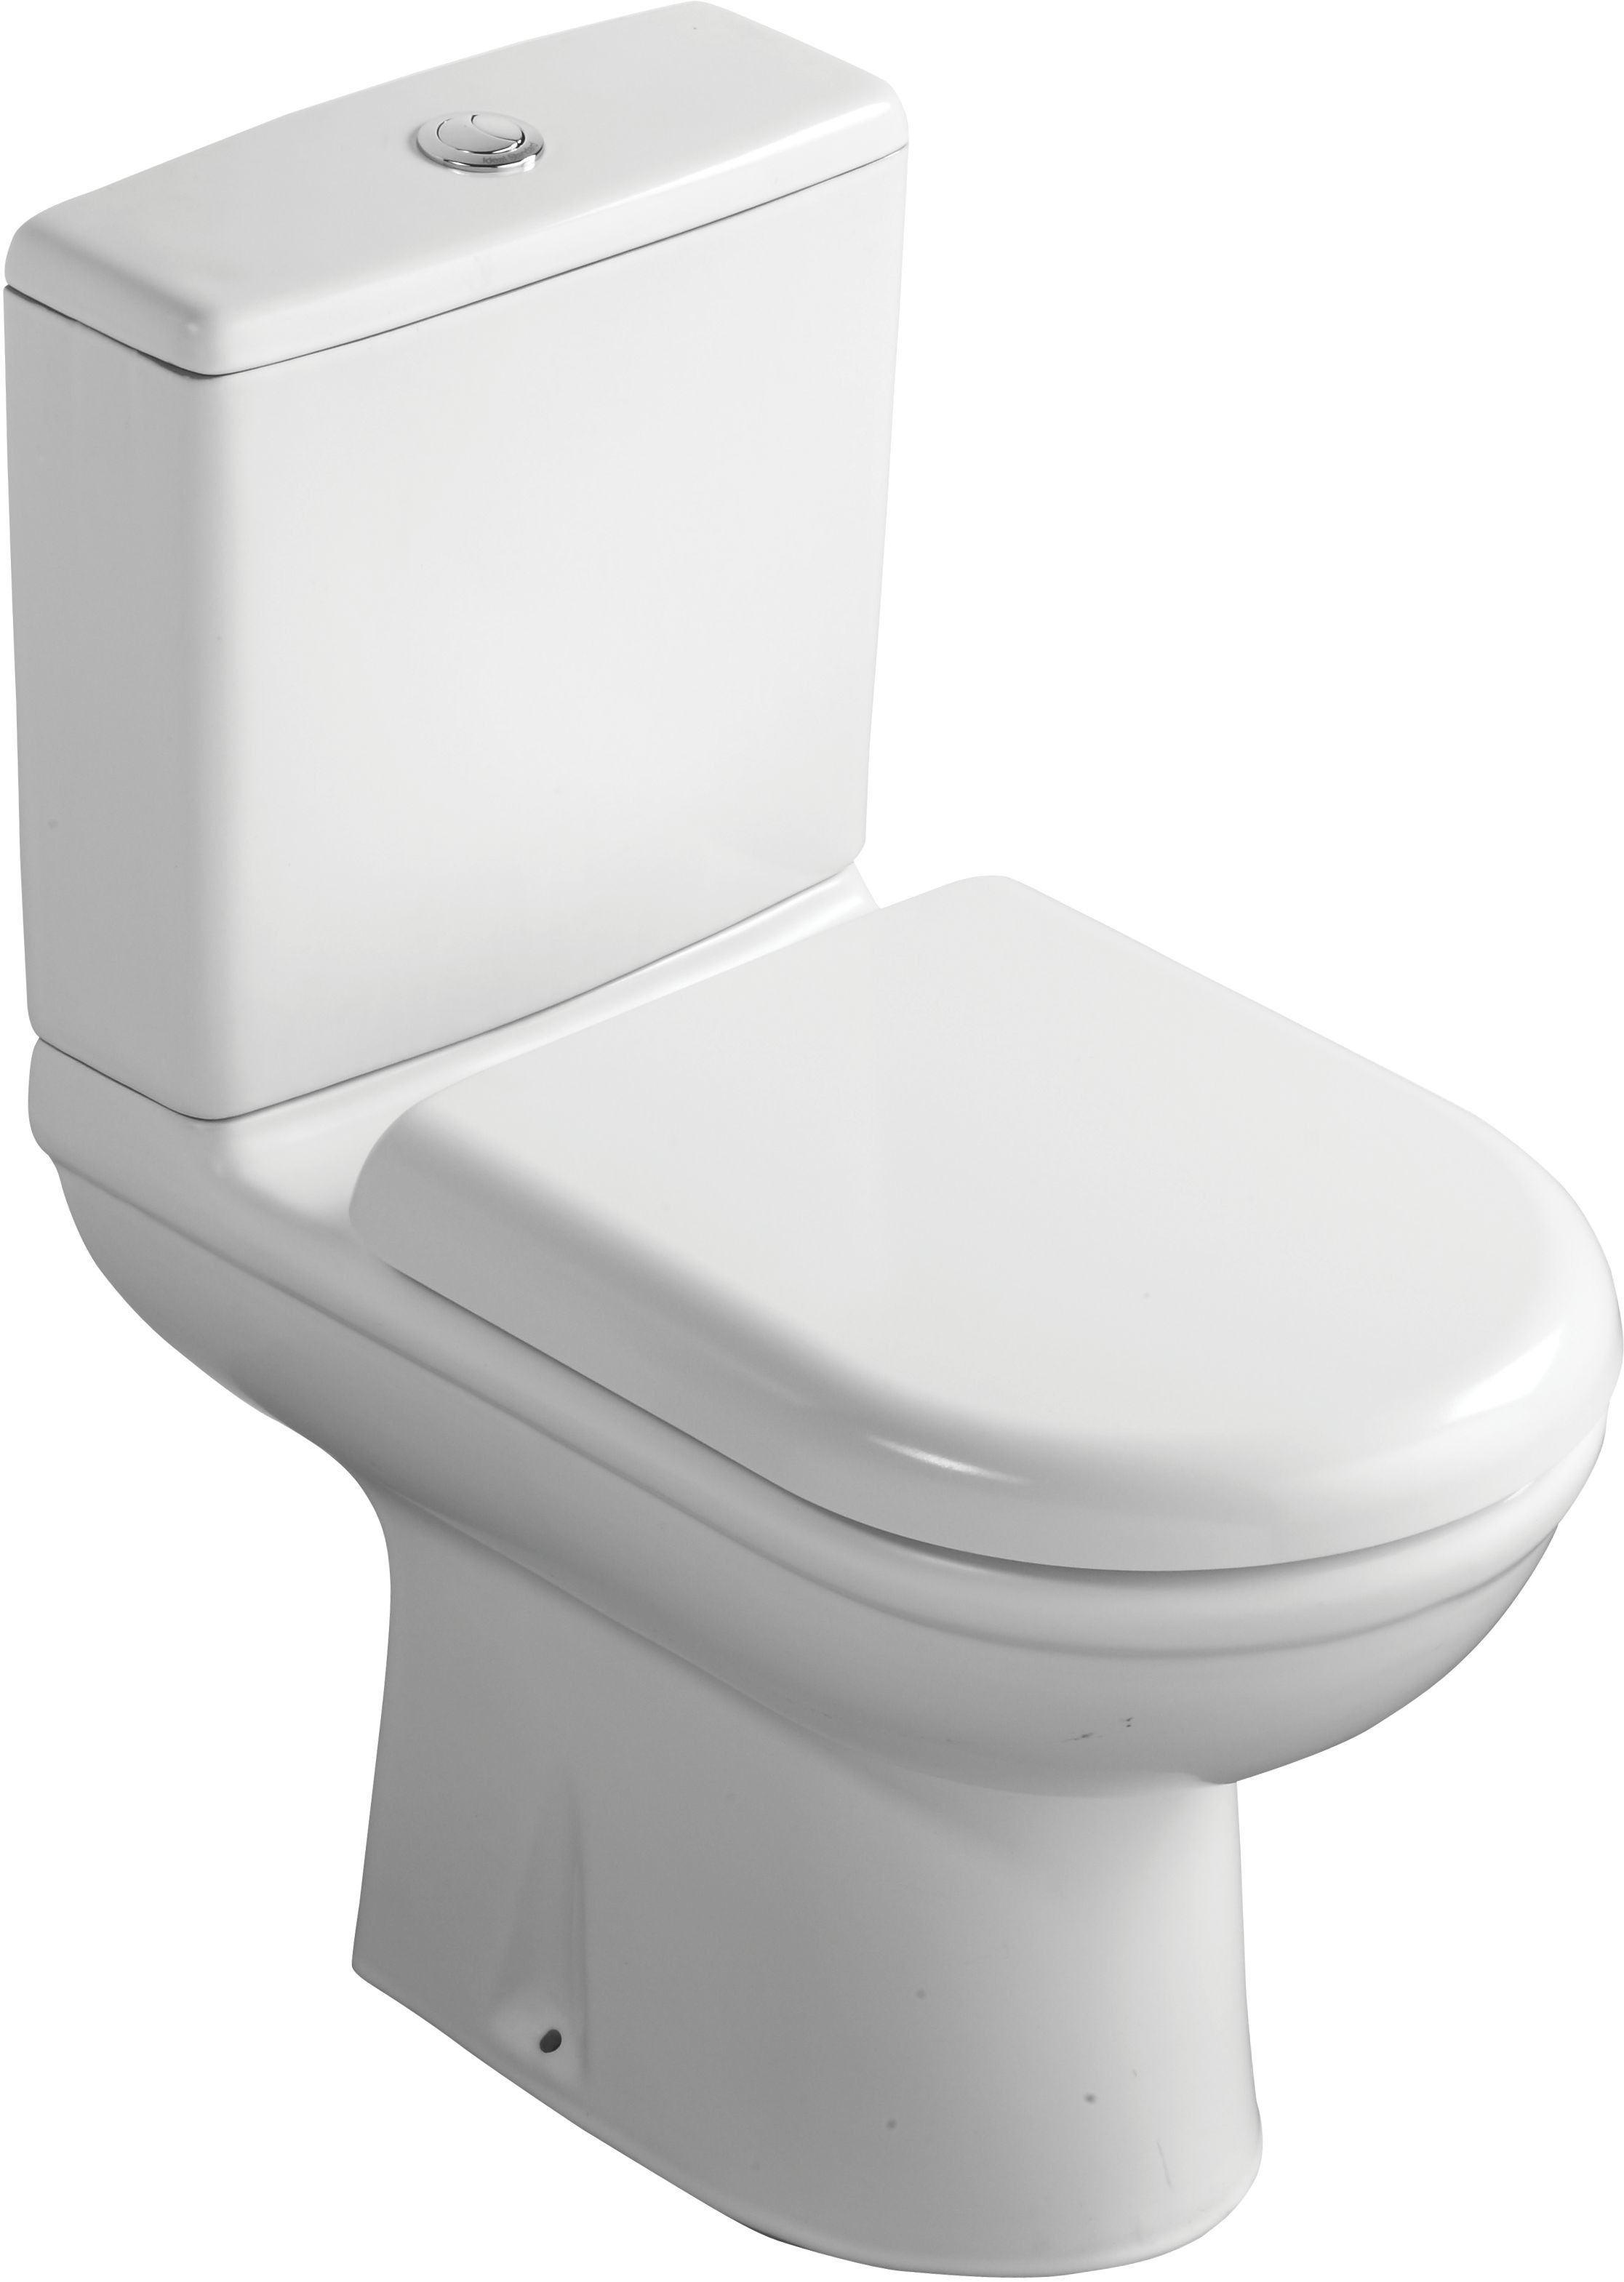 Ideal Standard Della Close Coupled Toilet With Soft Close Seat Departments Diy At B Amp Q